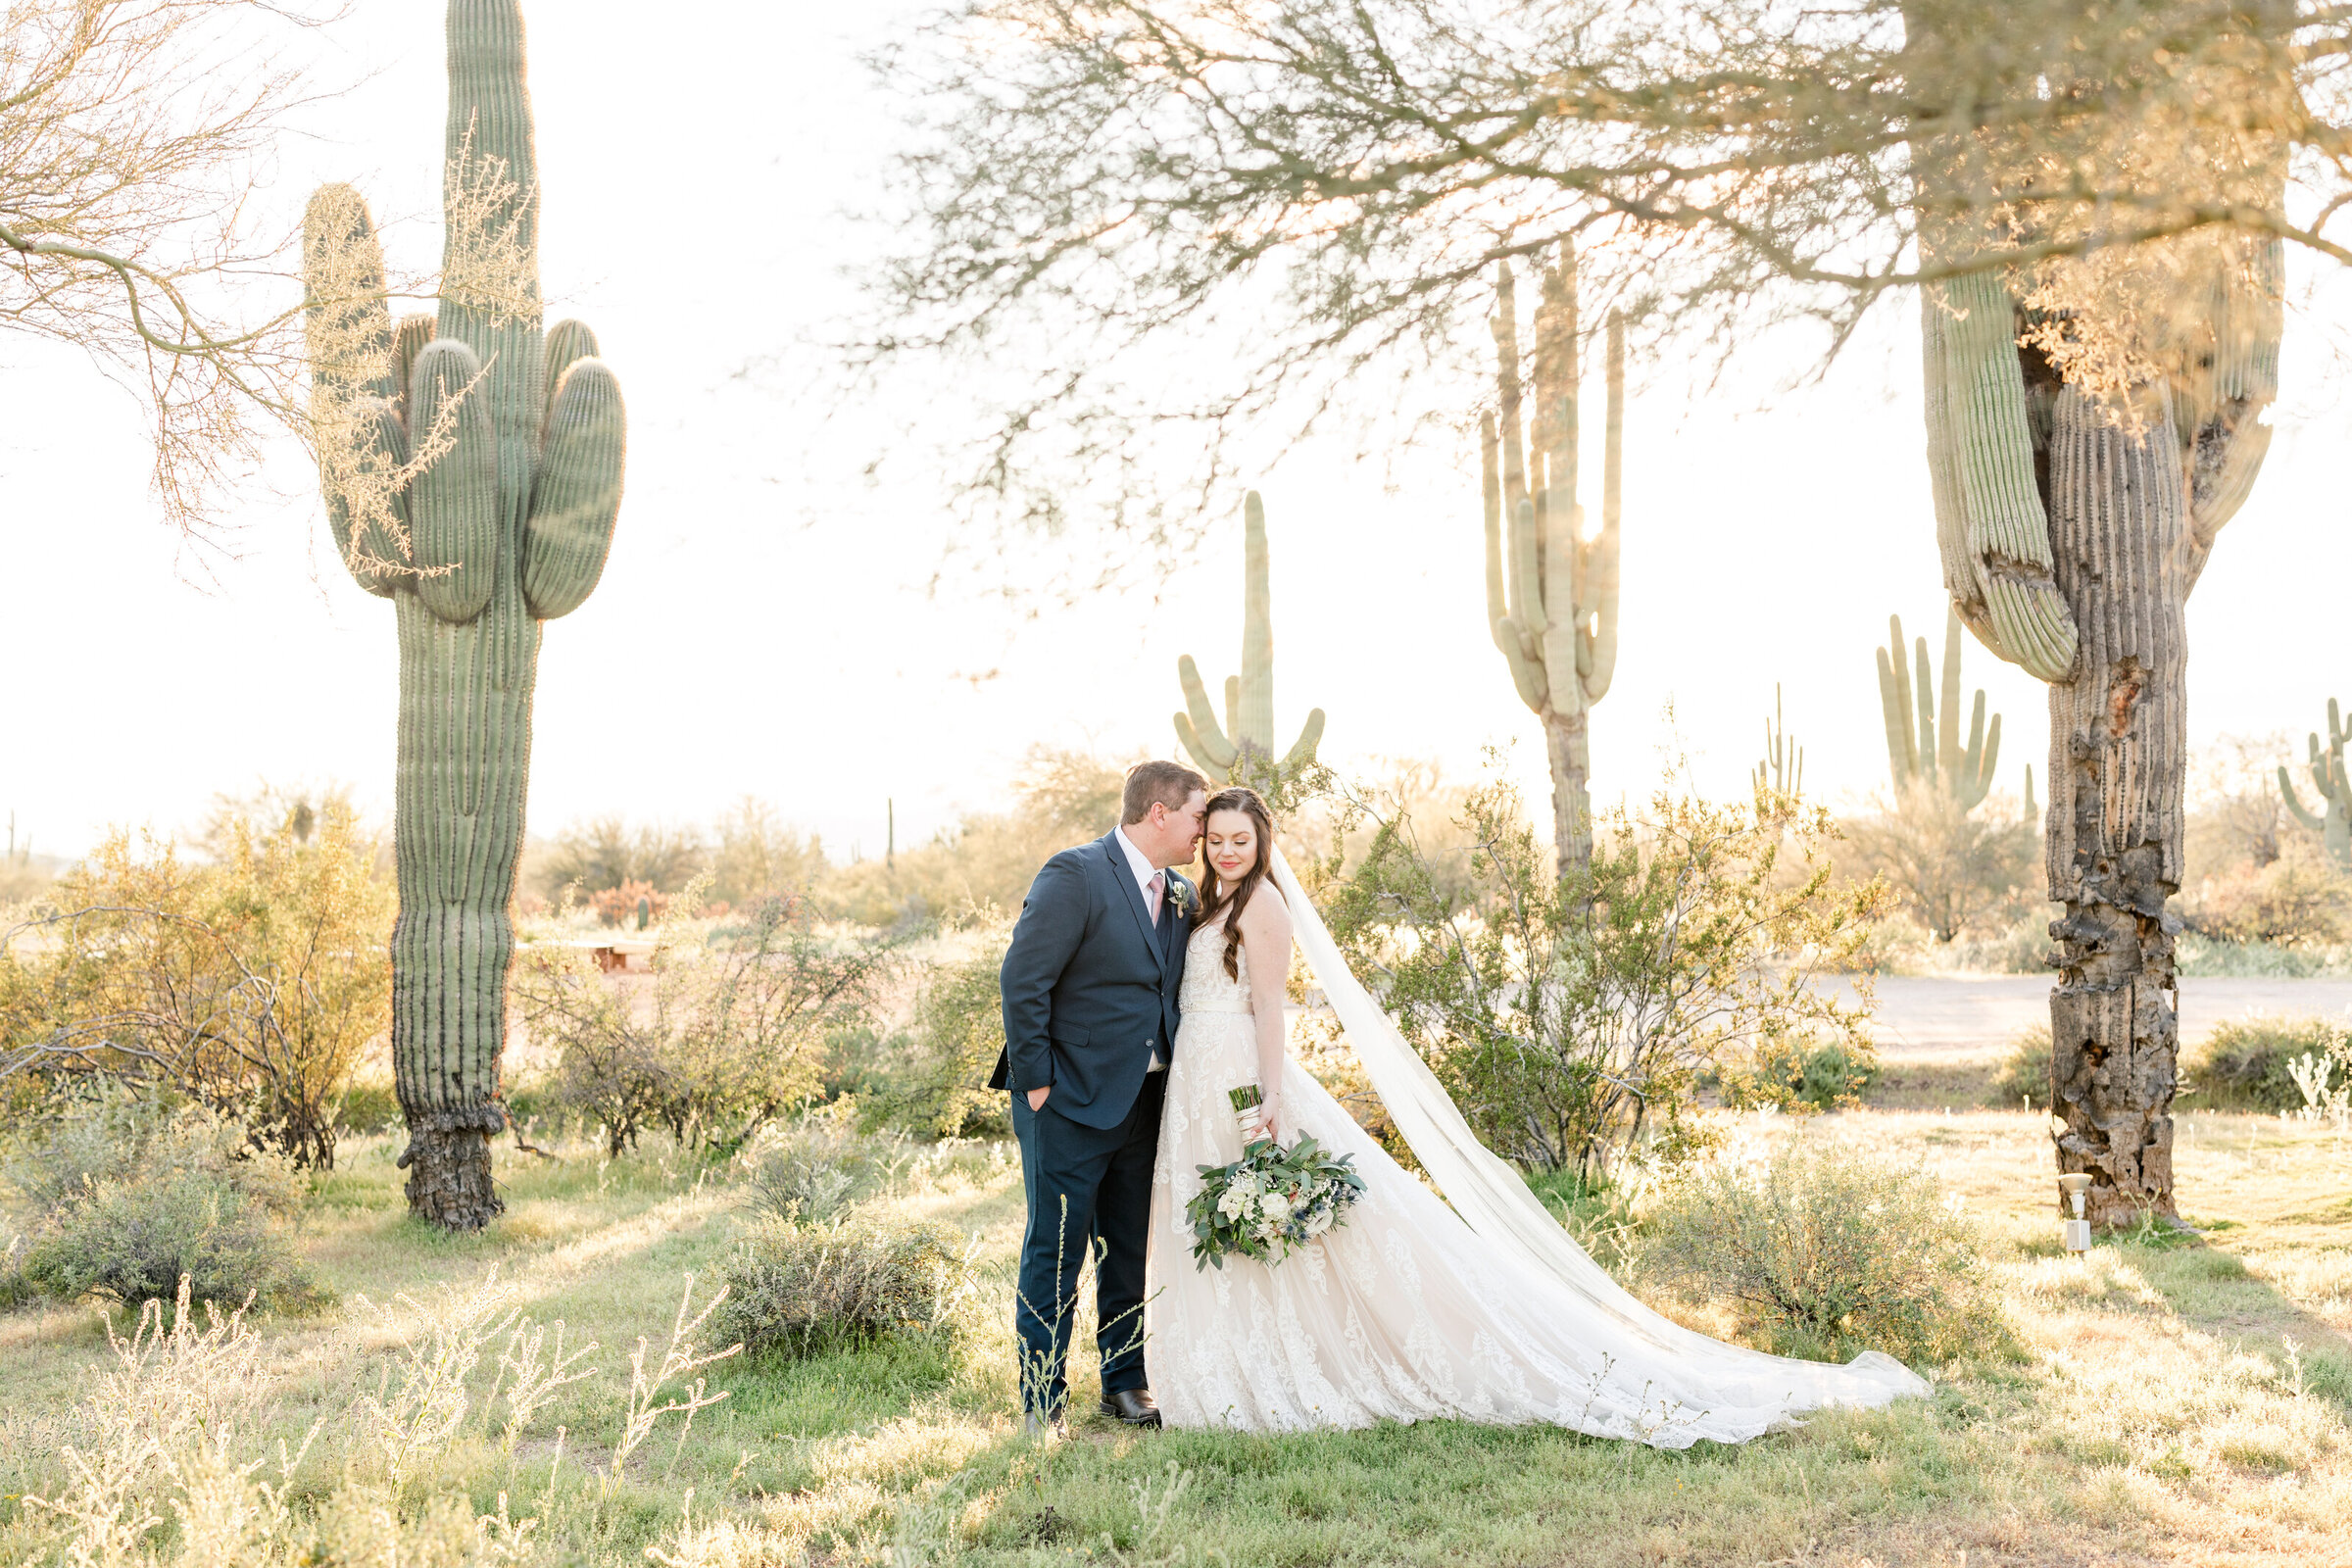 Bride and groom in the desert surrounded by saguaro cacti